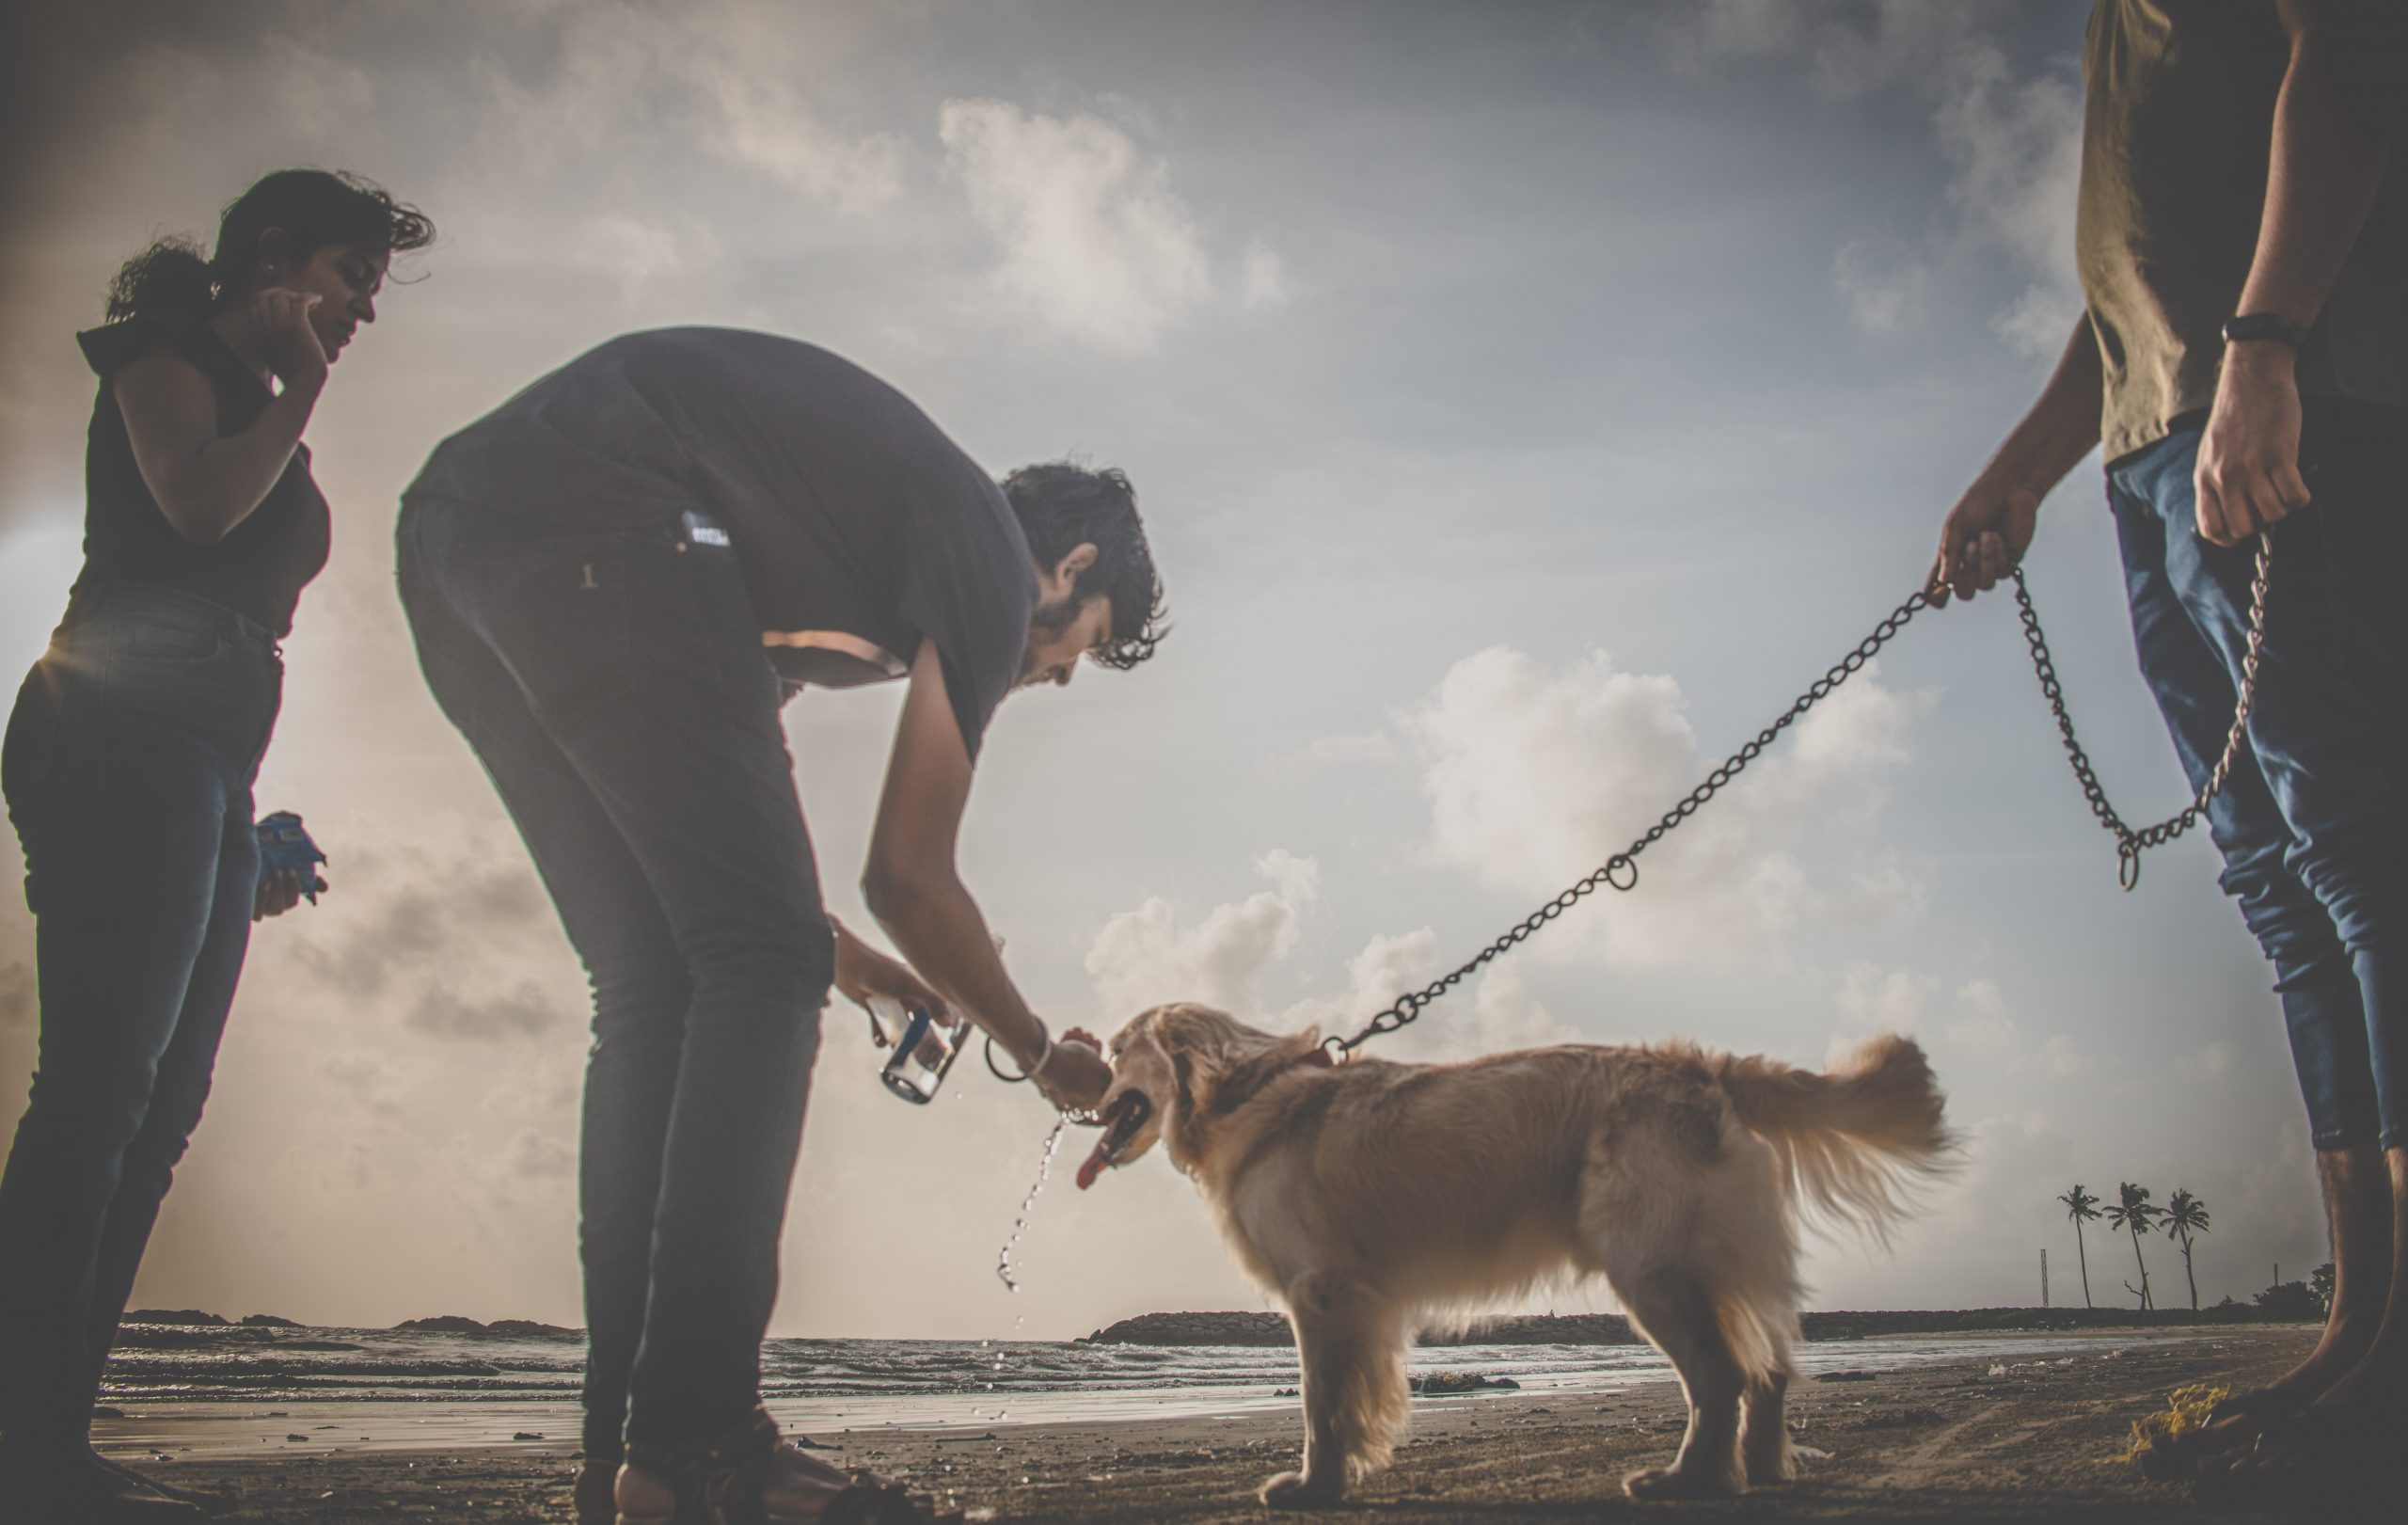 A pet dog and humans